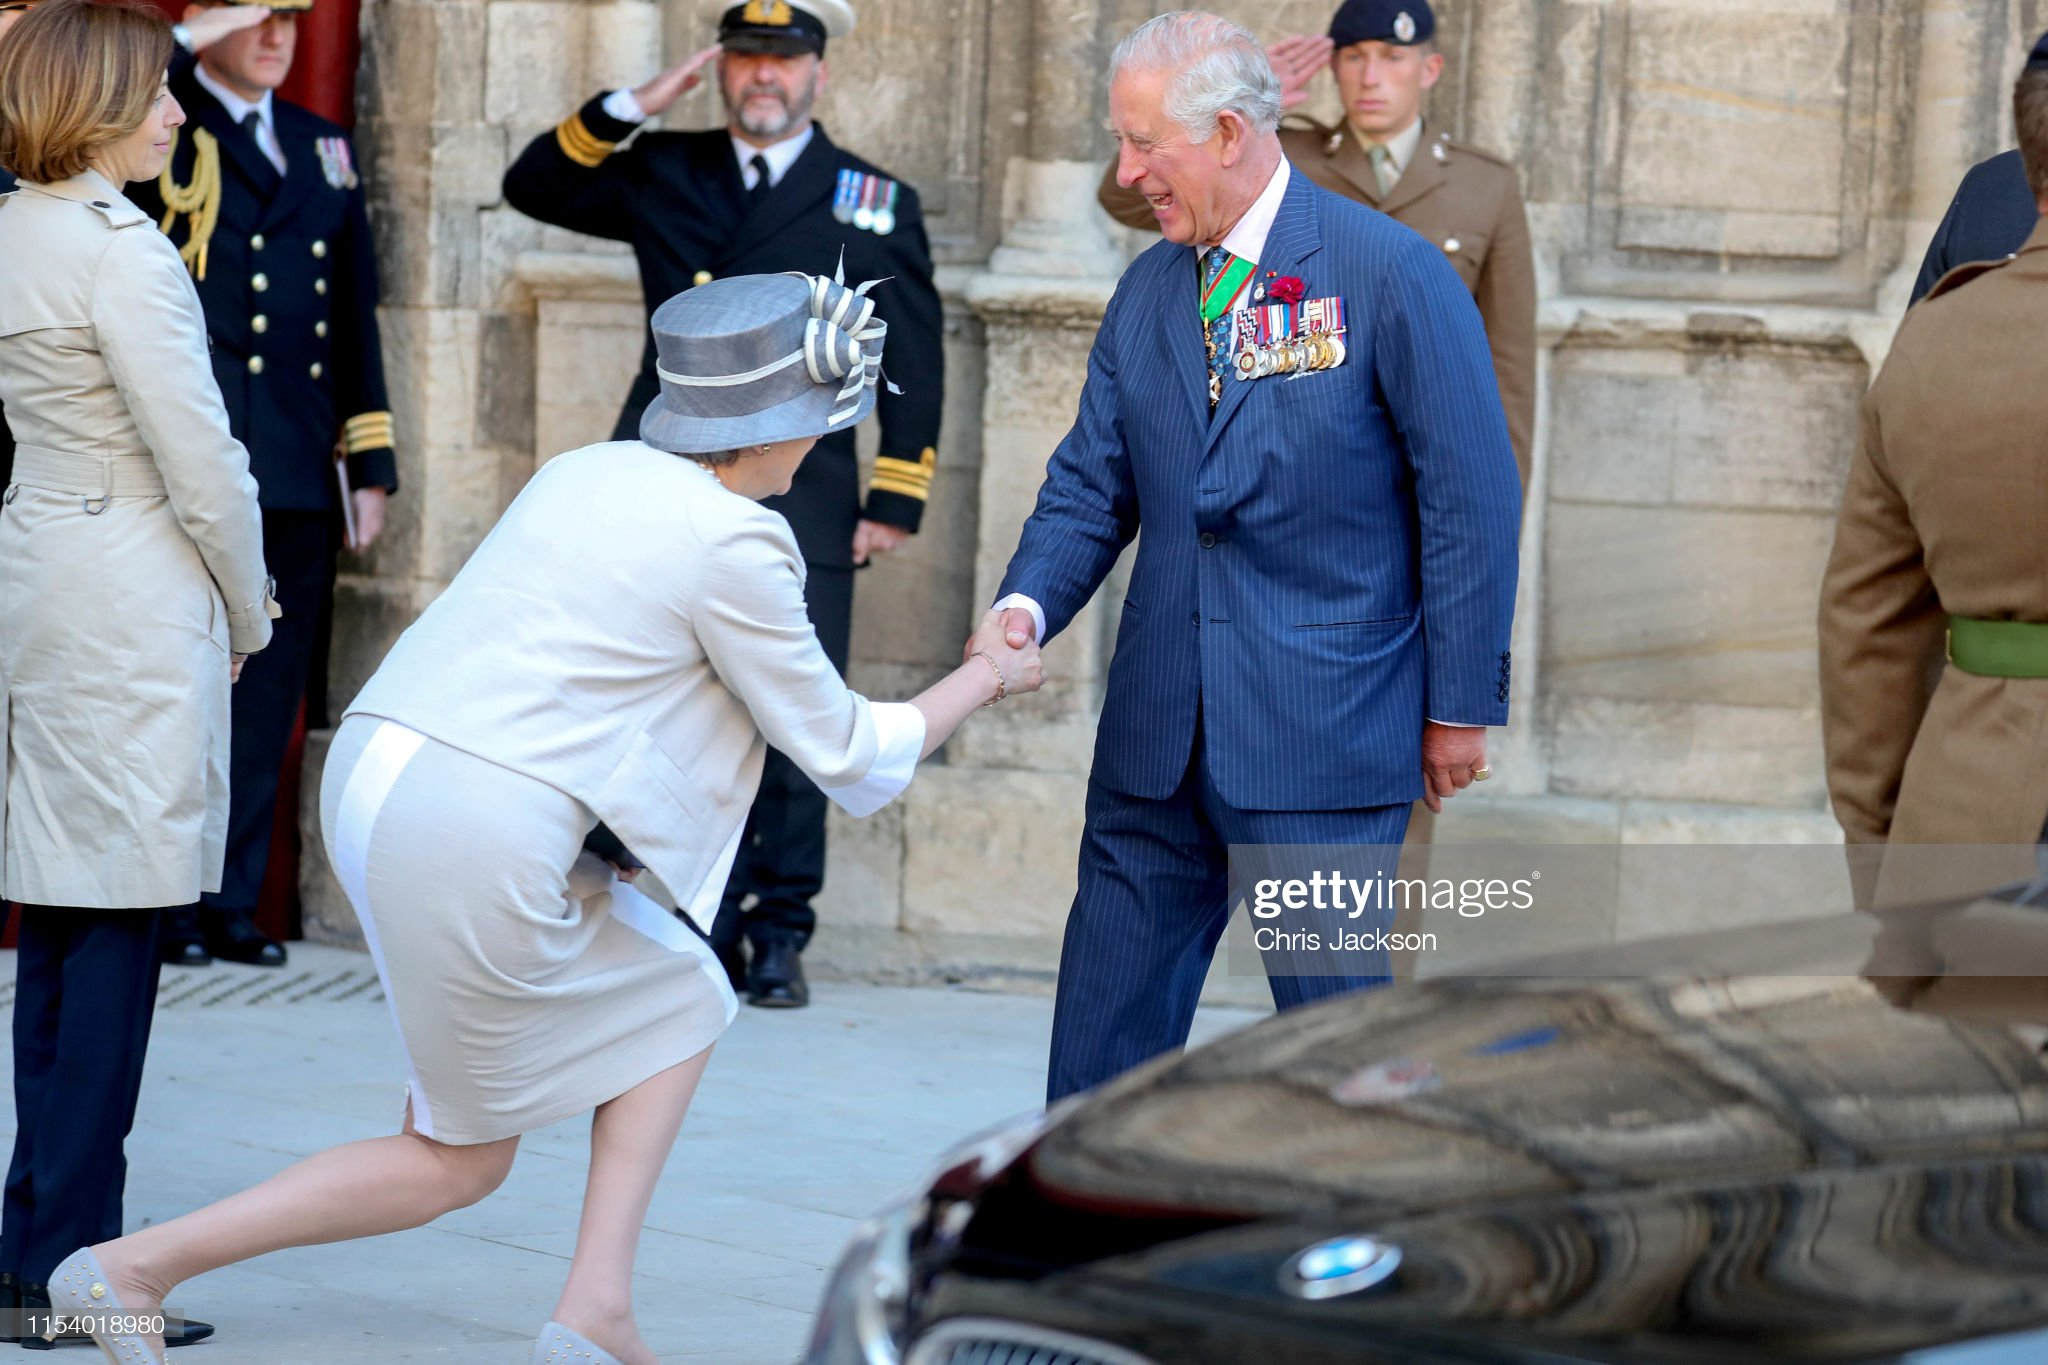 britains-prime-minister-theresa-may-courtesys-for-prince-charles-of-picture-id1154018980